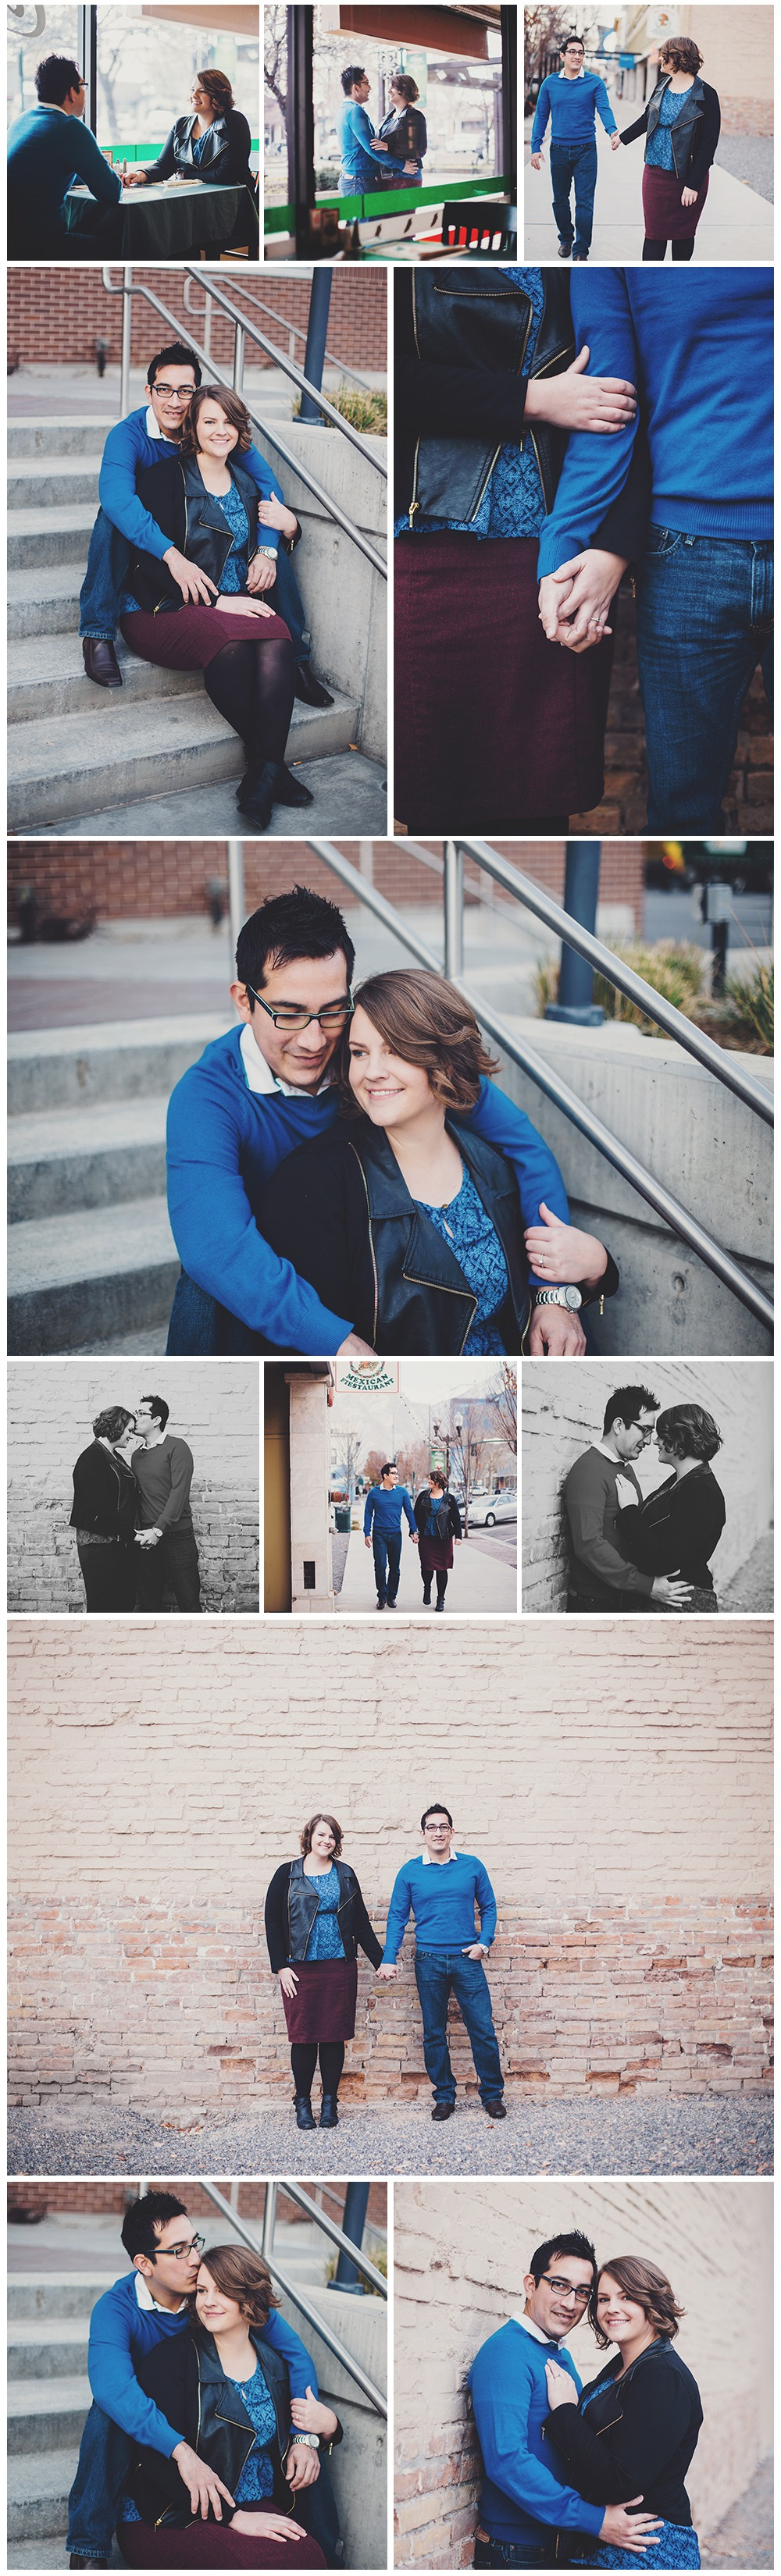 Provo Center Street Engagement Photographer